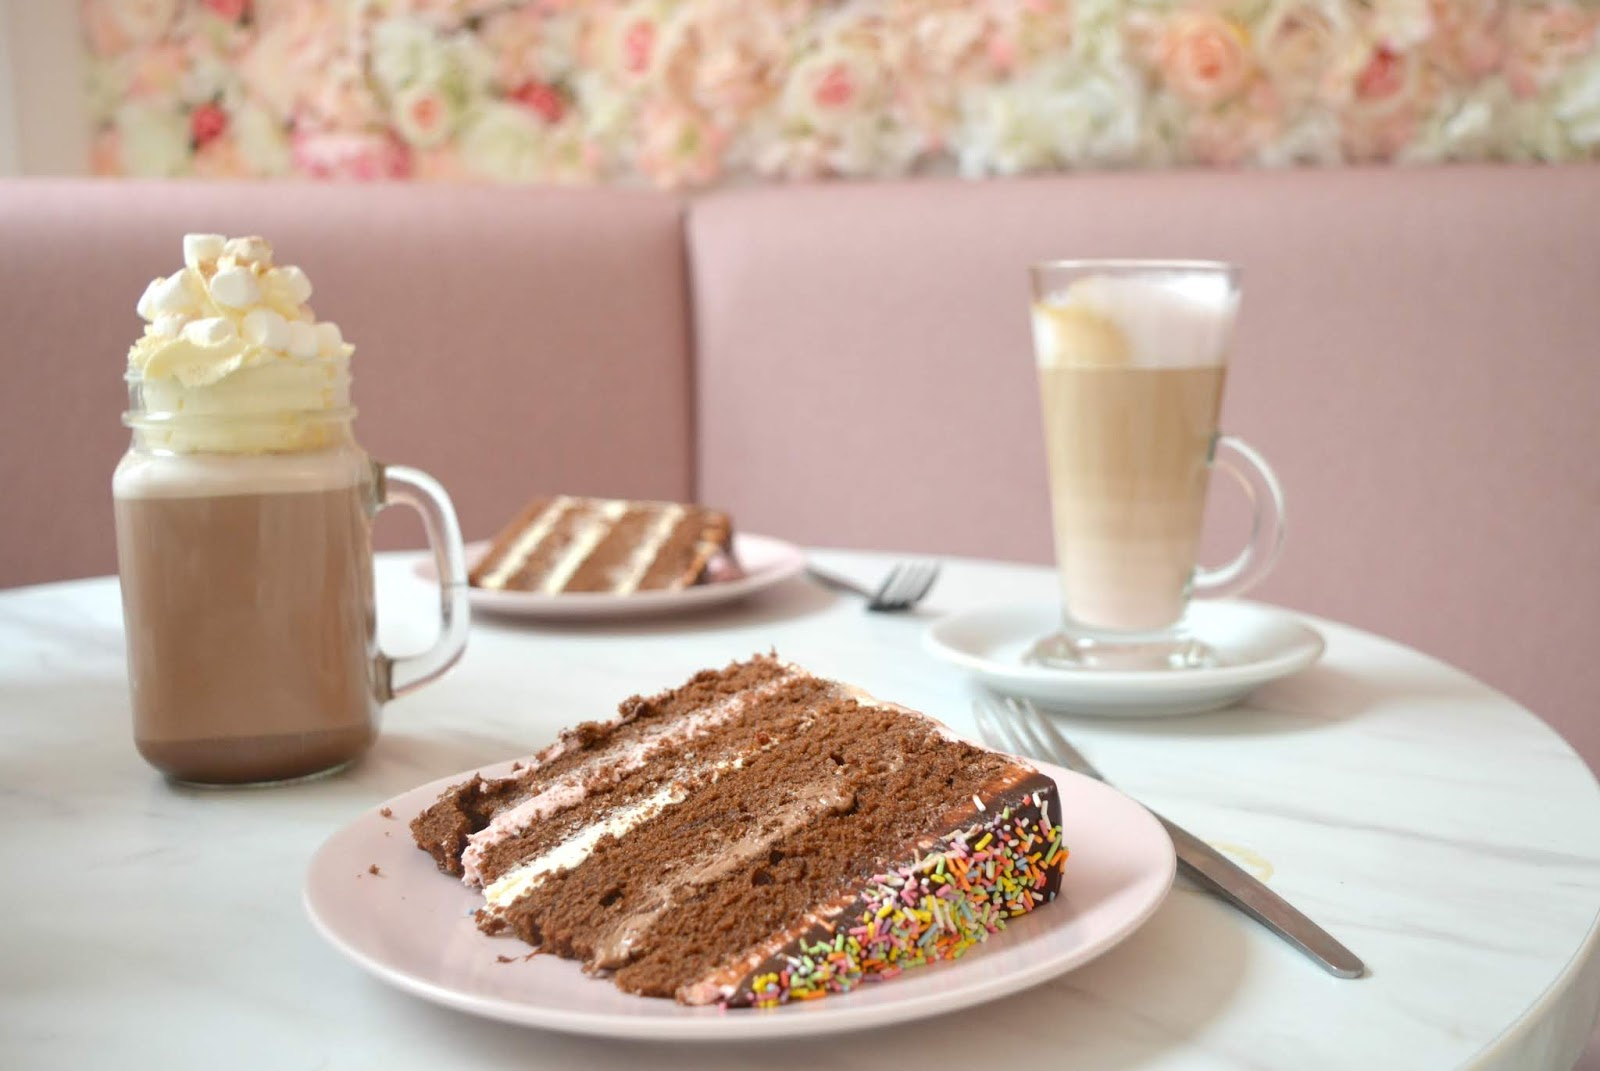 Flower Walls and Pink Lattes - Great British Cupcakery Instagram Hot Spot of Newcastle